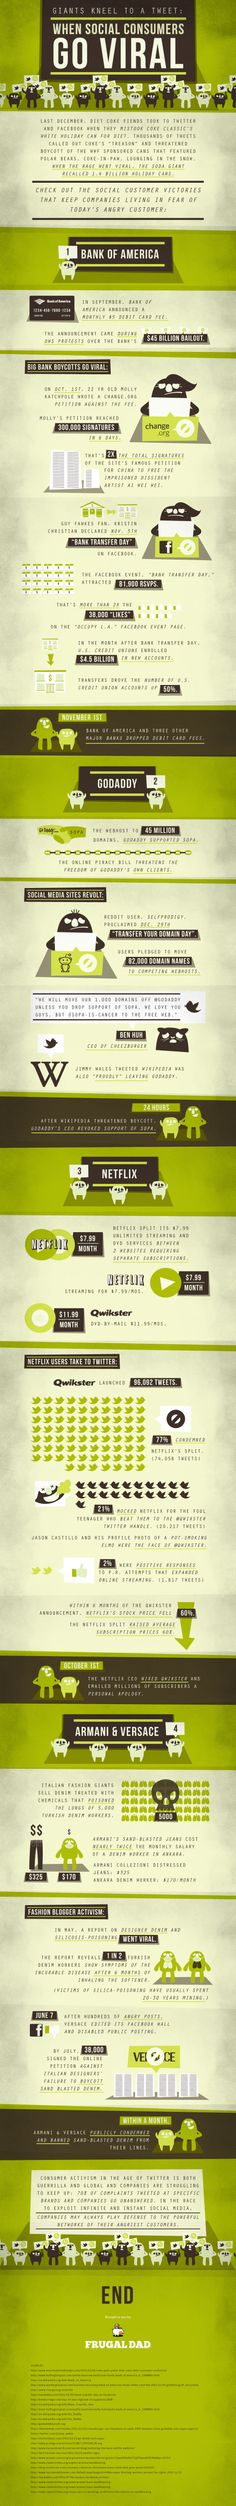 Social Consumer Infographic